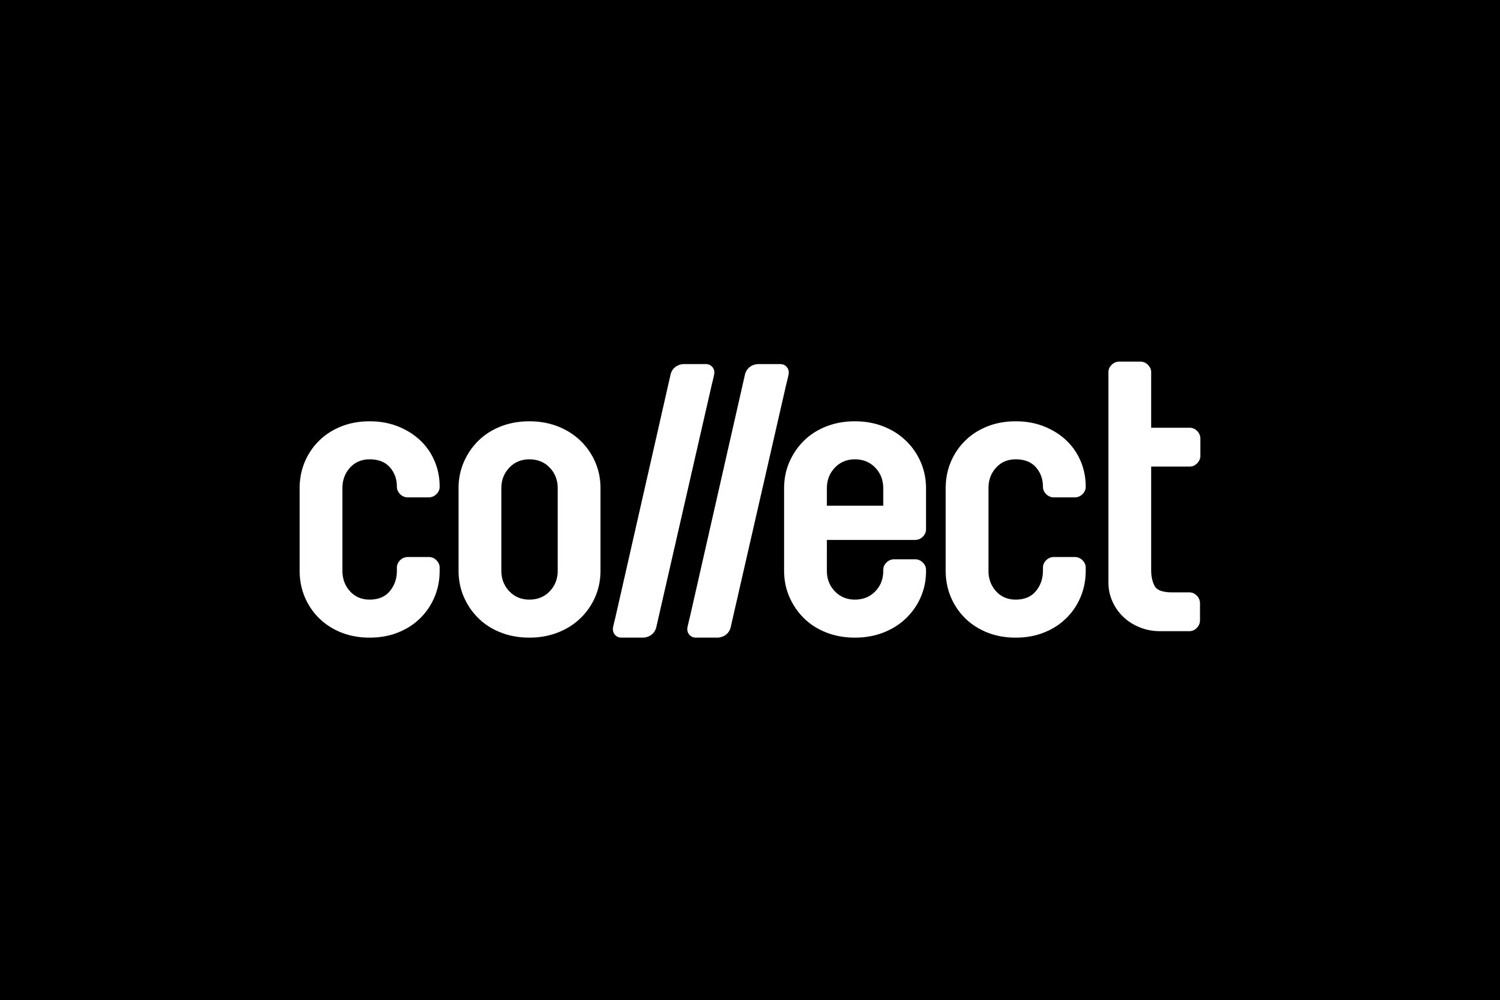 Logo for contemporary international art fair Collect, designed by Spin, London, UK